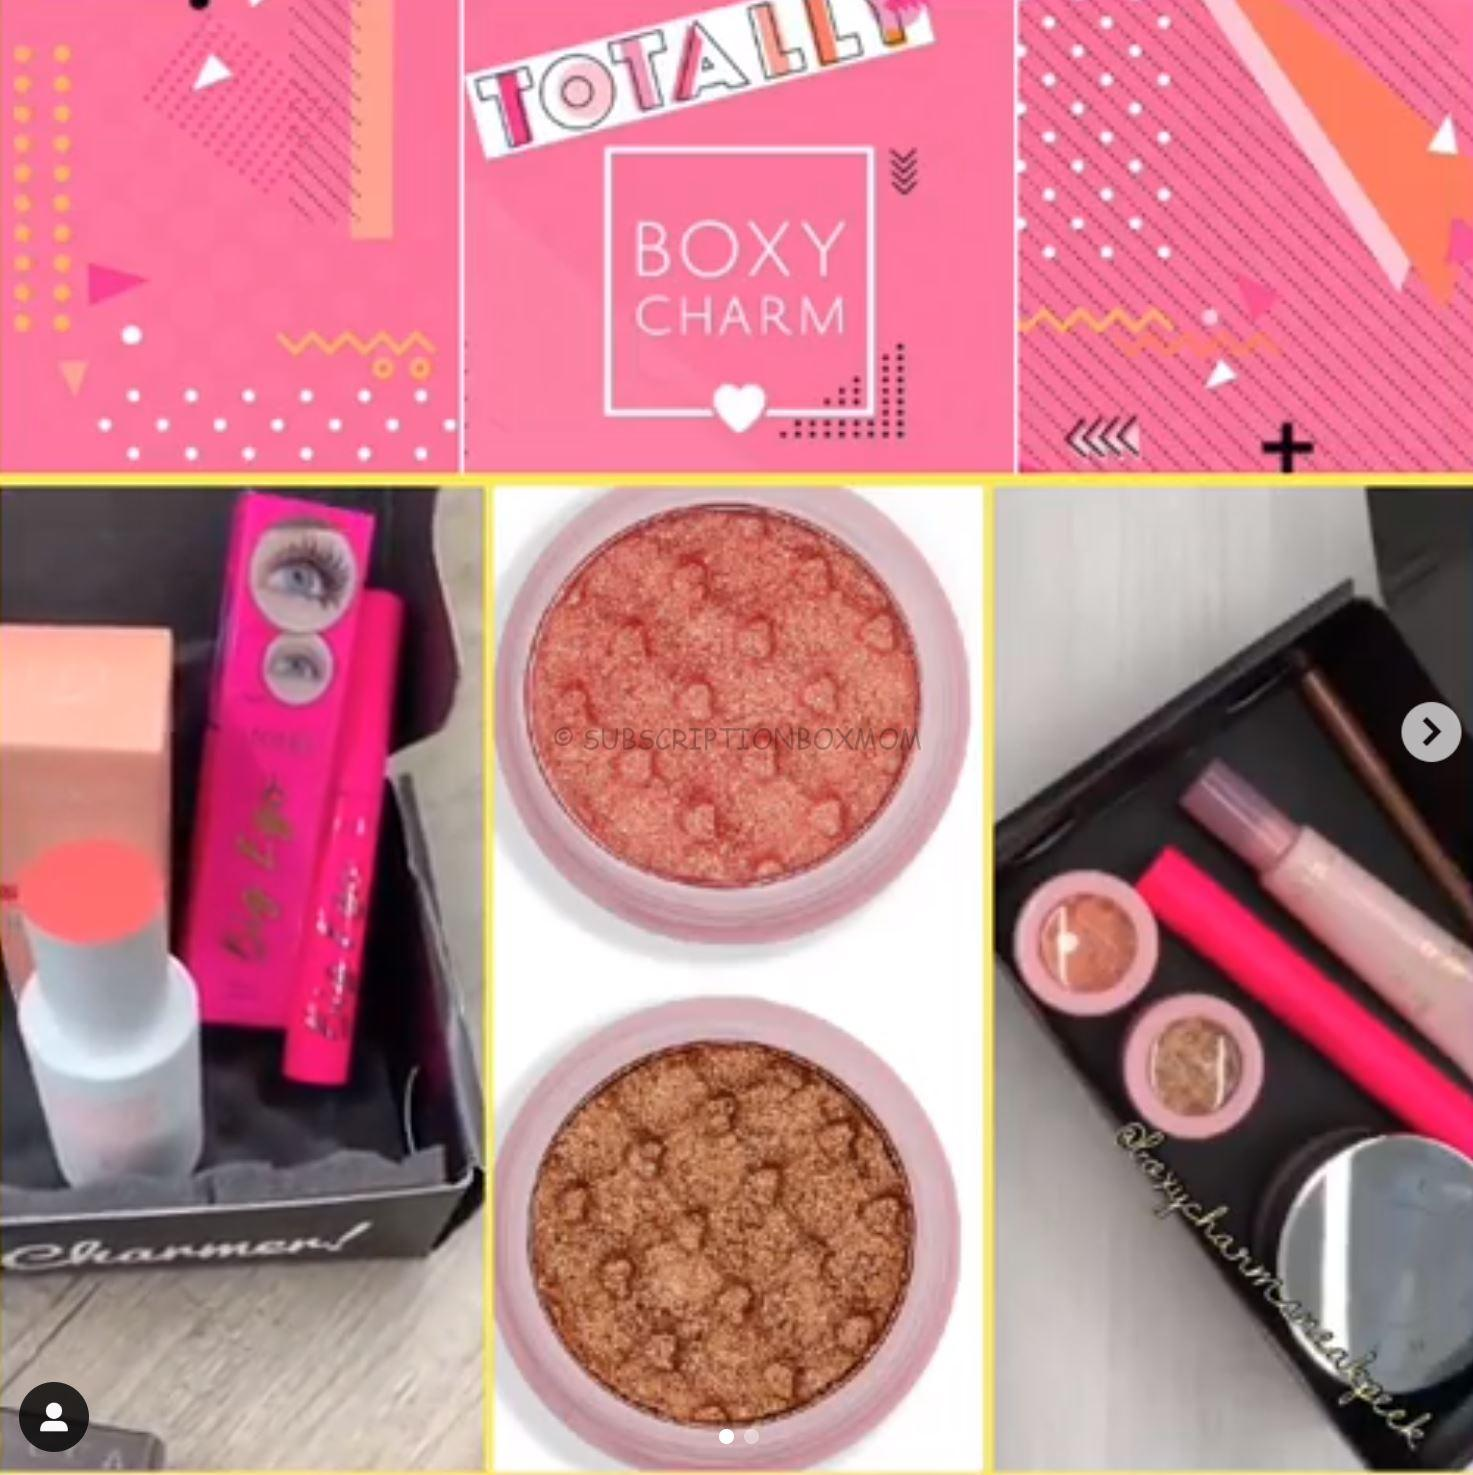 Full Boxycharm August 2019 Spoilers Coupon Code Subscription Box Mom